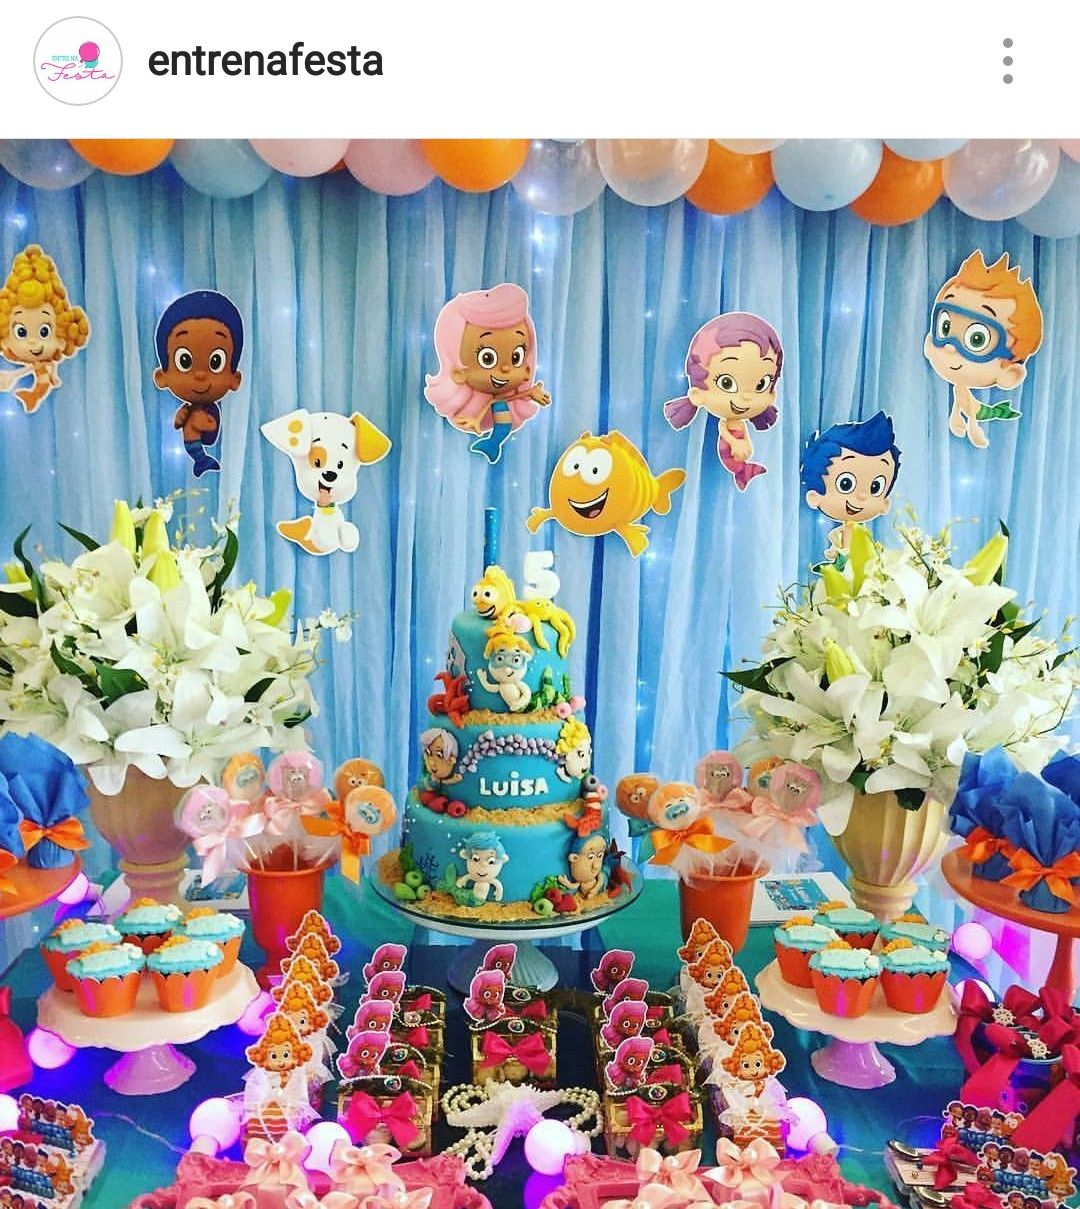 Bubble Guppies Birthday Party Dessert Table And Decor Bubble Guppies Birthday Party Bubble Guppies Party Bubble Guppies Birthday